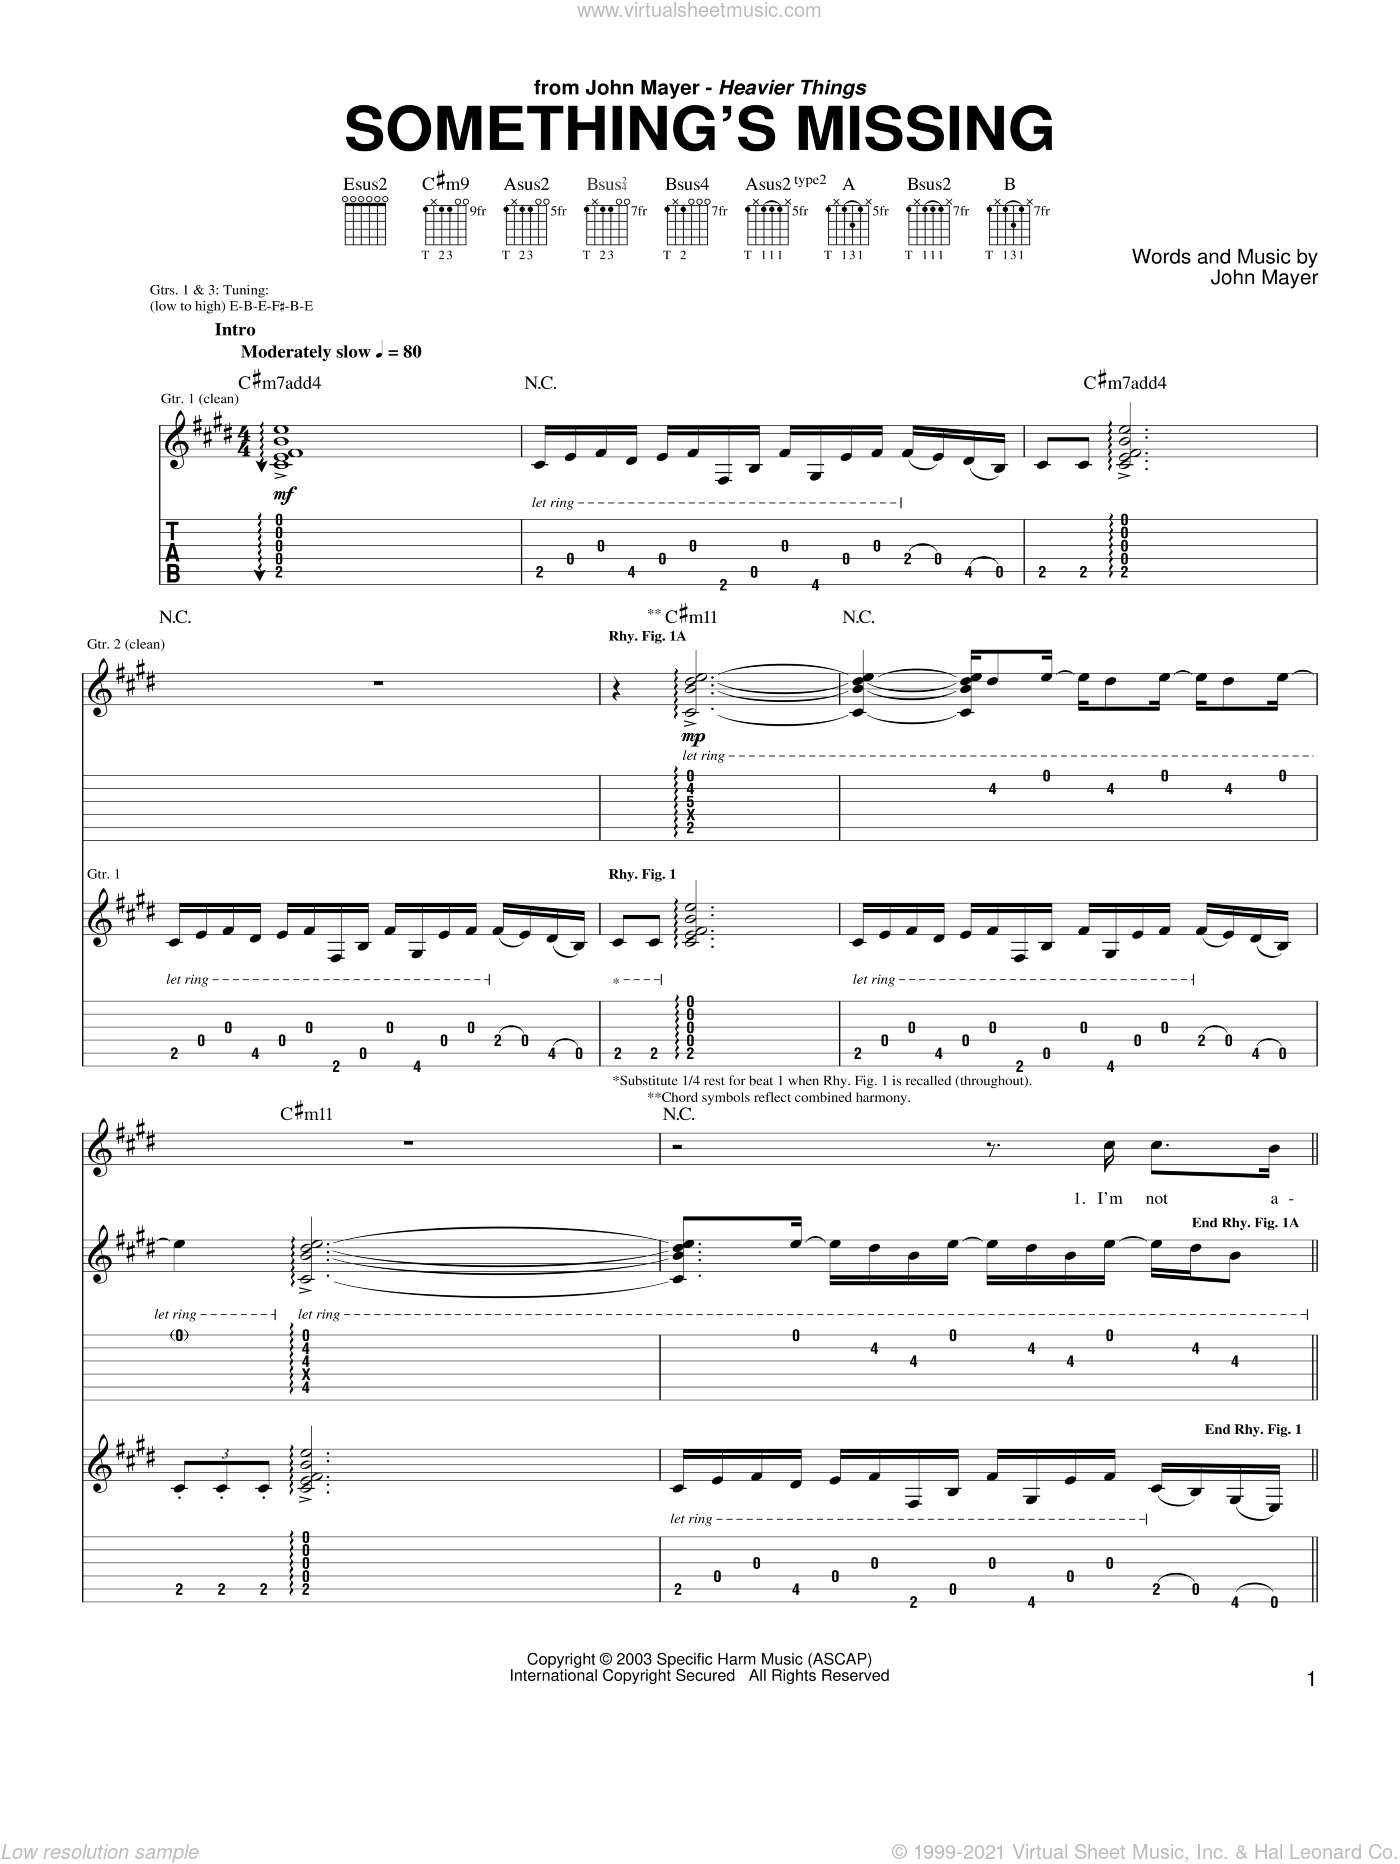 Something's Missing sheet music for guitar (tablature) by John Mayer, intermediate skill level